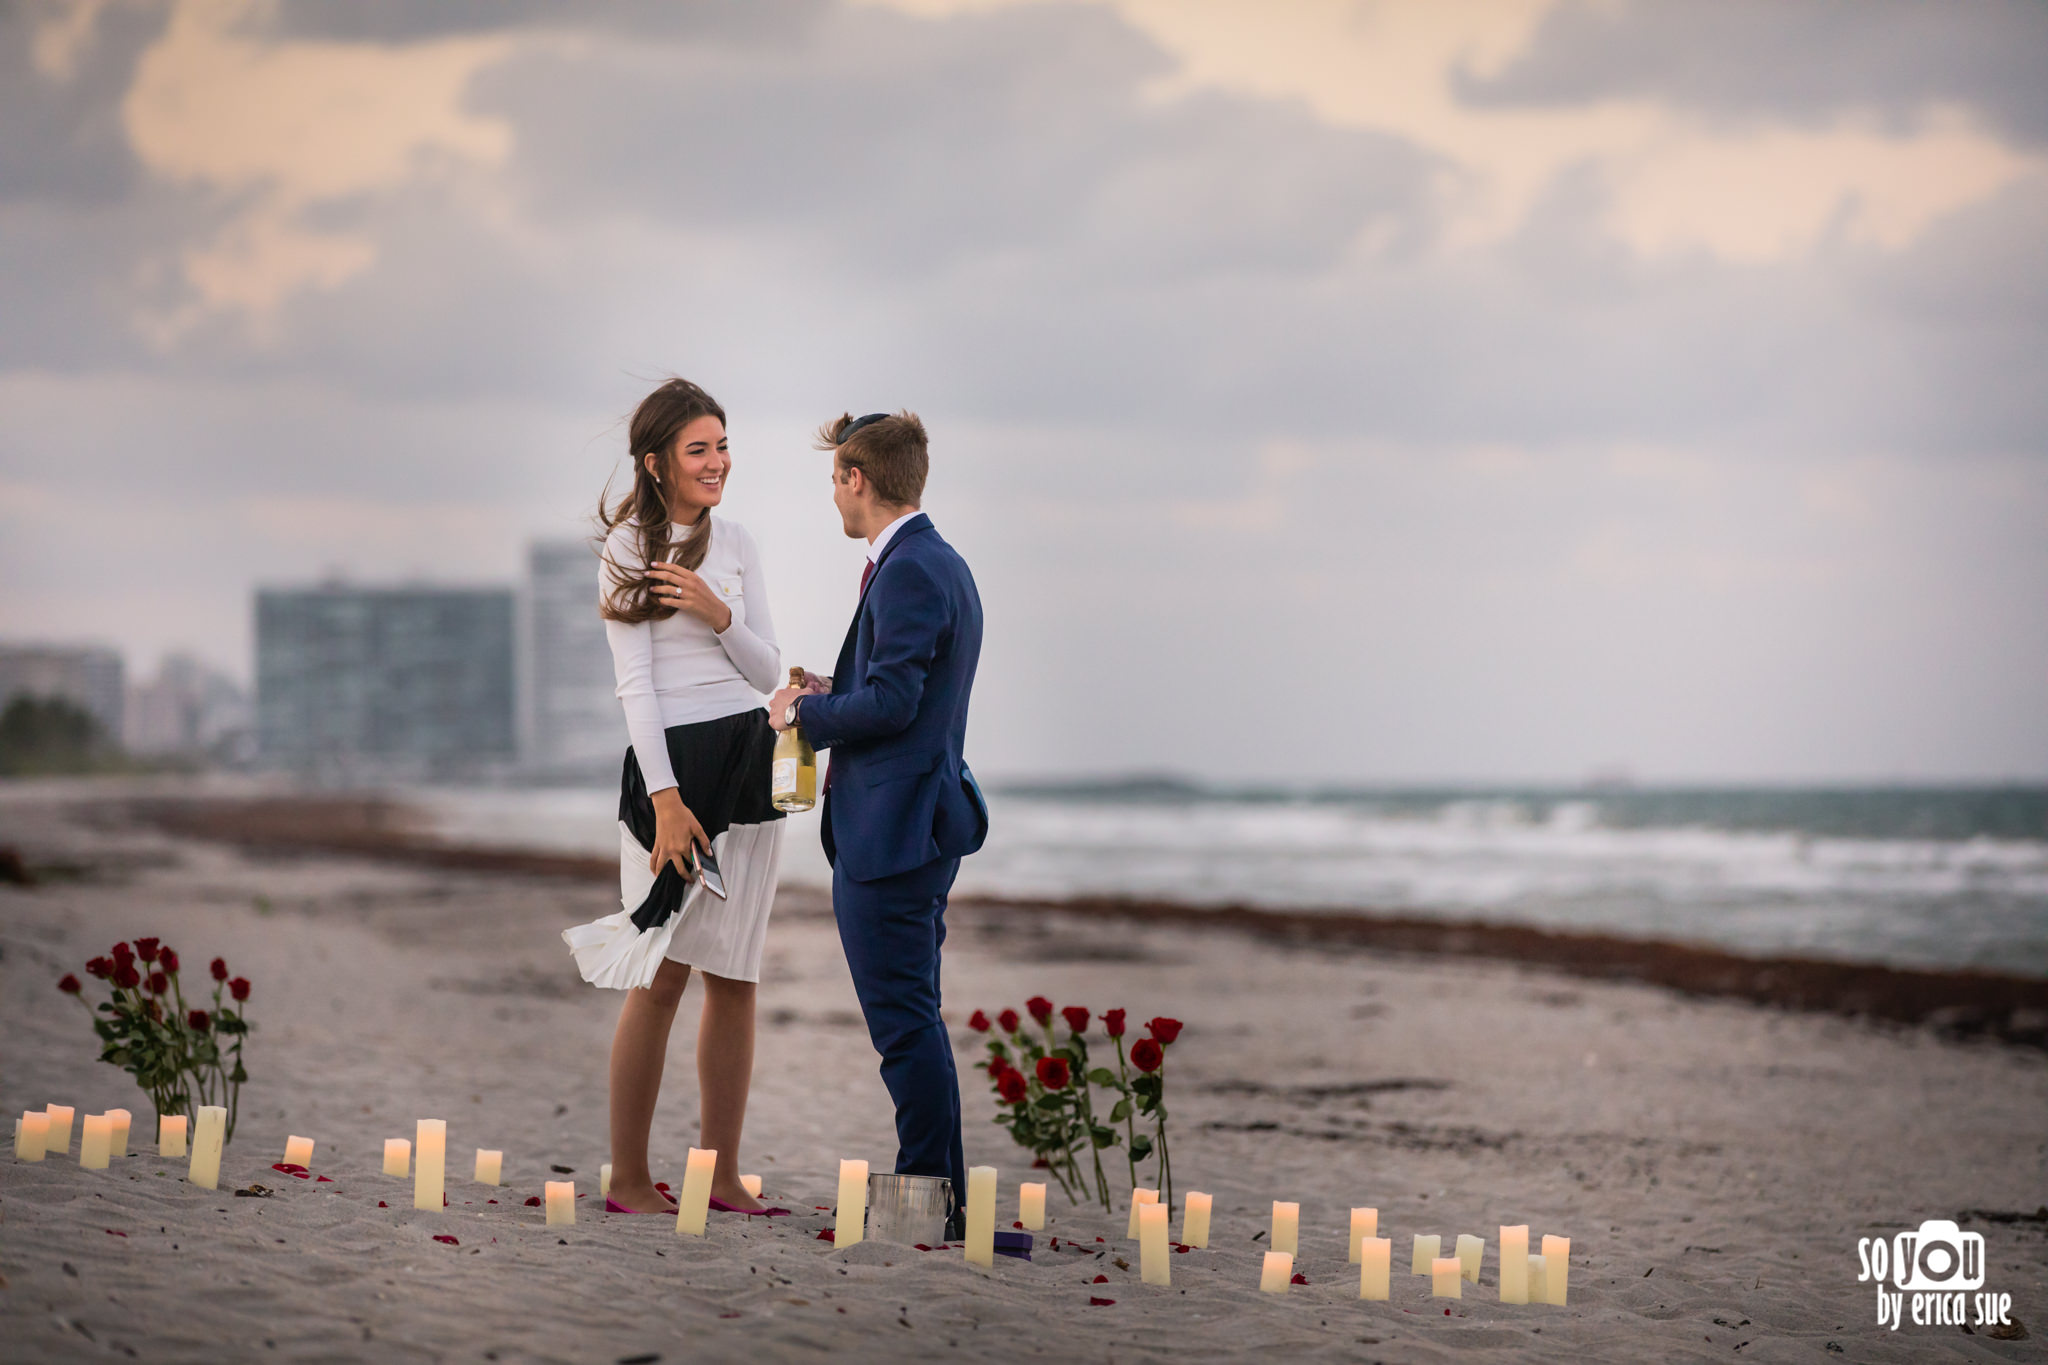 so-you-by-erica-sue-hollywood-fl-photographer-beach-engagement-flowers-candles-4958.jpg